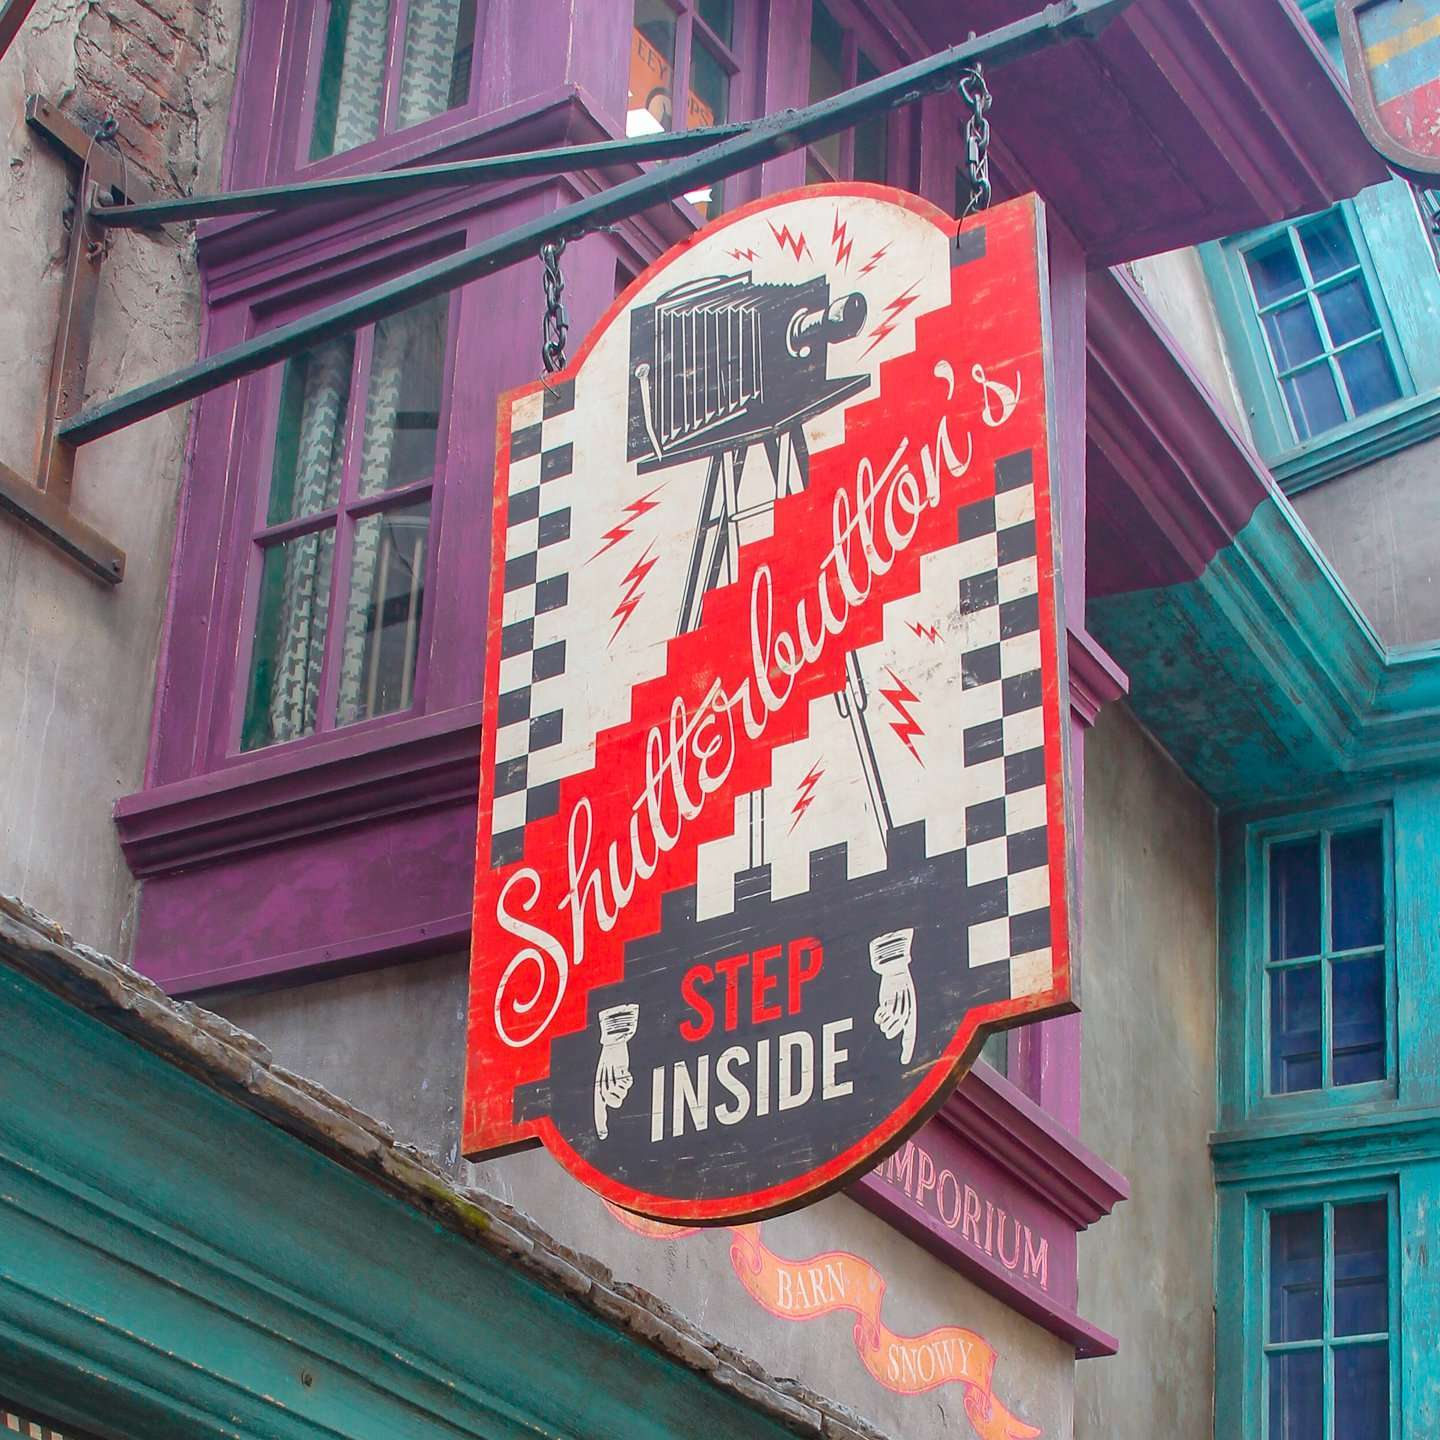 Moving Pictures at Shutterbuttons in Universal Studios Wizarding World of Harry Potter